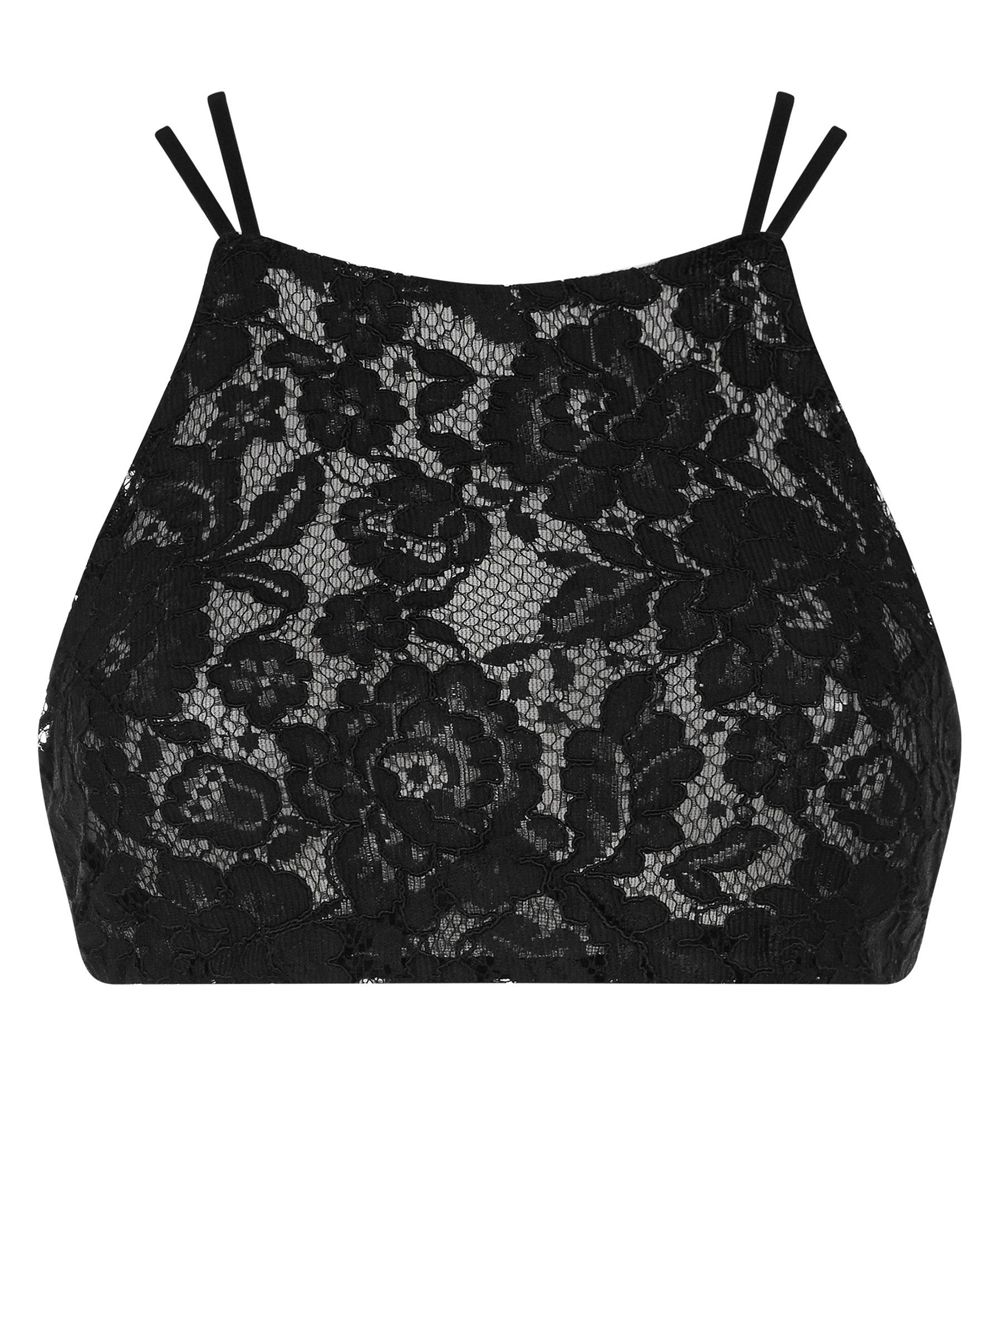 Ann Summers Lowe lace crop top Black